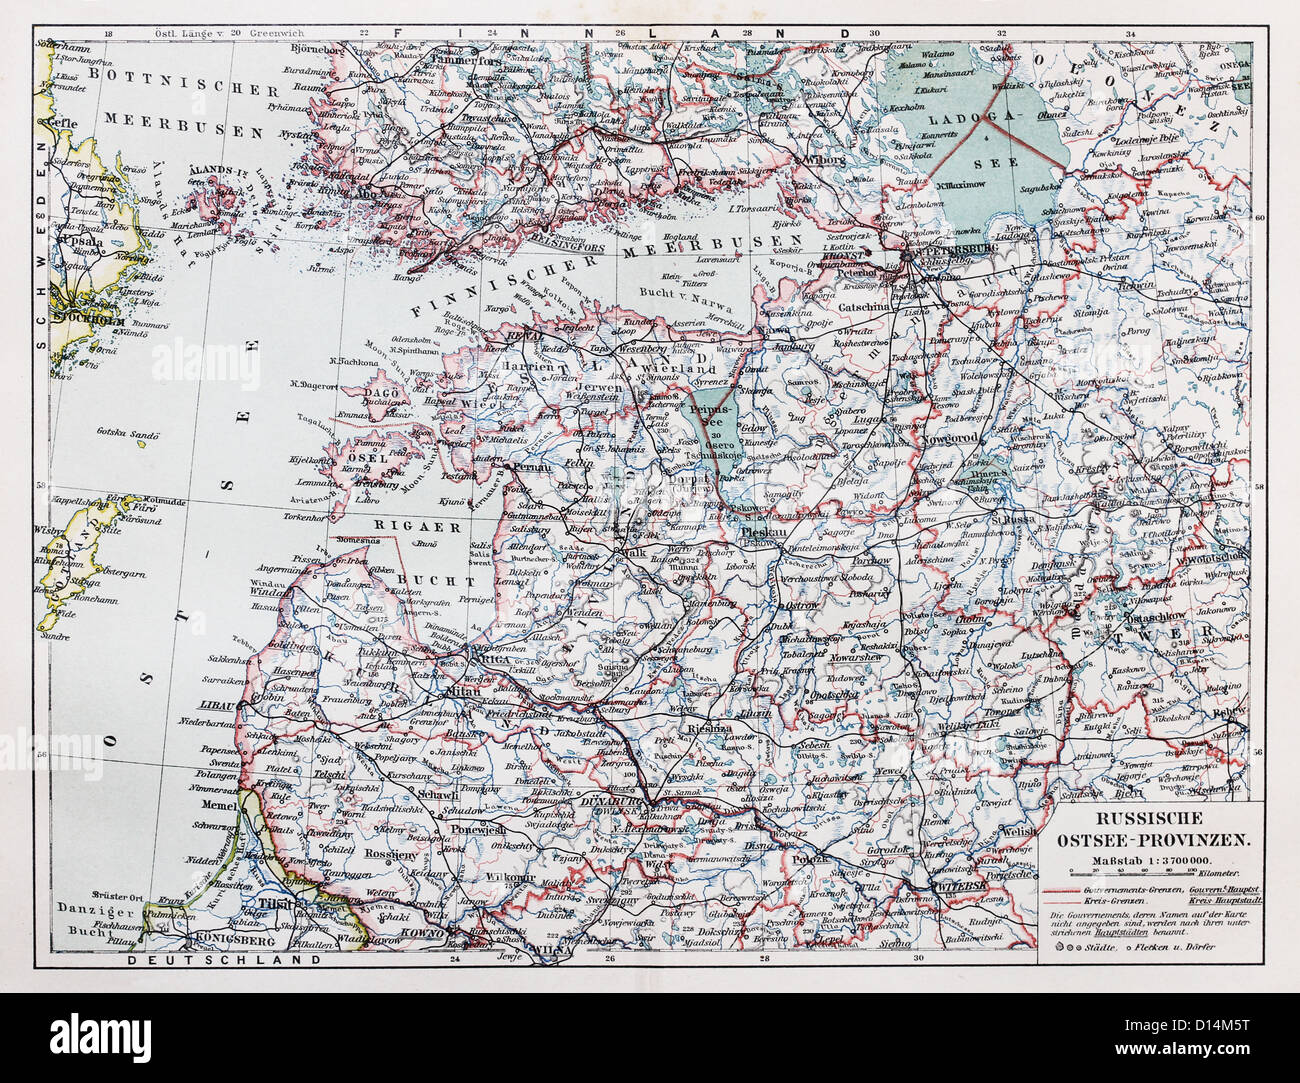 Vintage map of Russian Baltic sea provinces at the end of 19th century - Stock Image